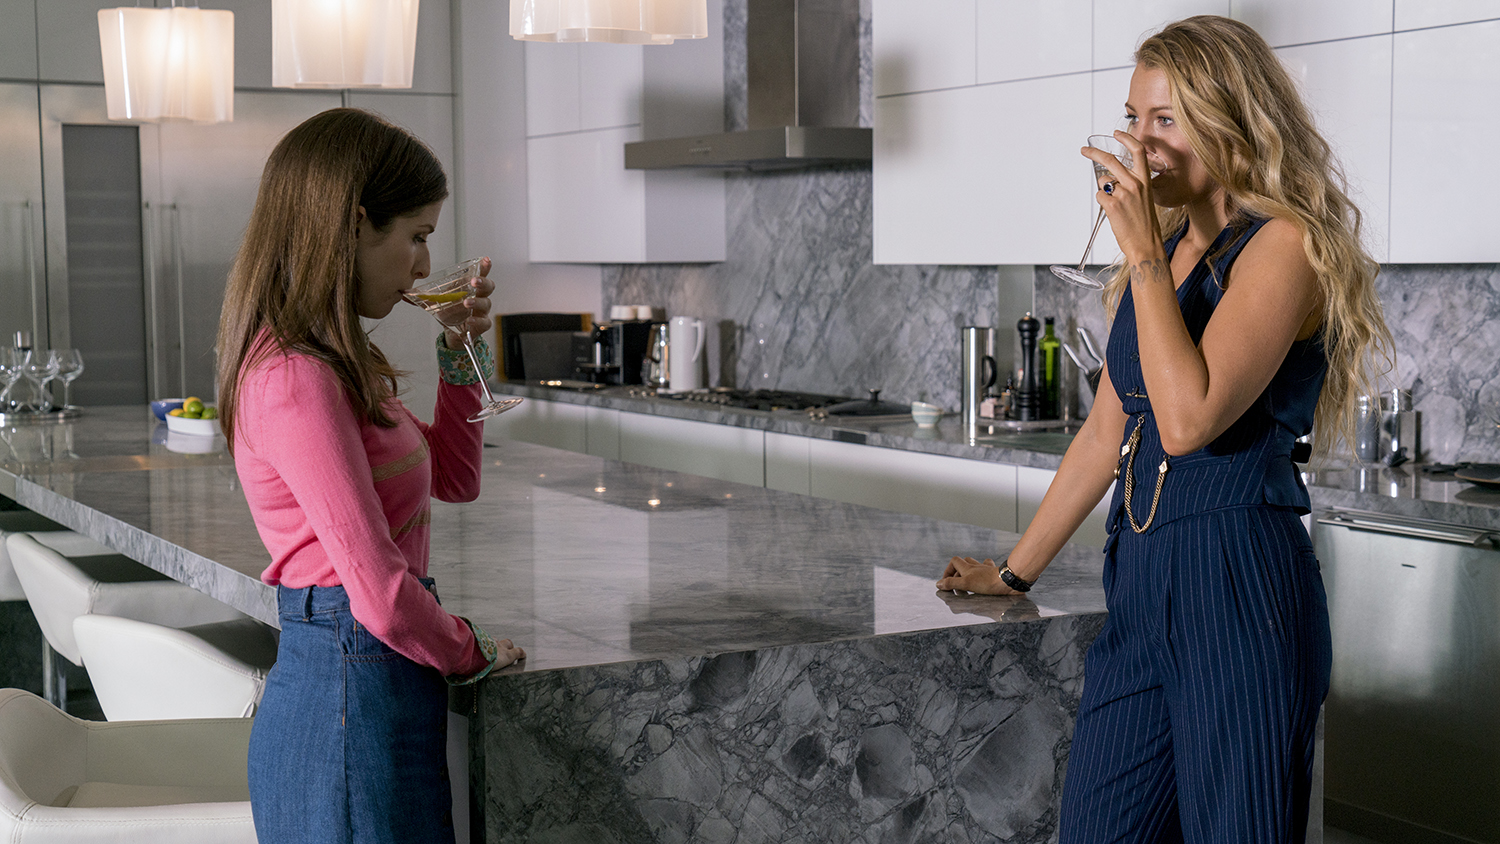 Stephanie (Anna Kendrick, left) and Emily (Blake Lively, right) in A SIMPLE FAVOR. Photo credit: Peter Iovino